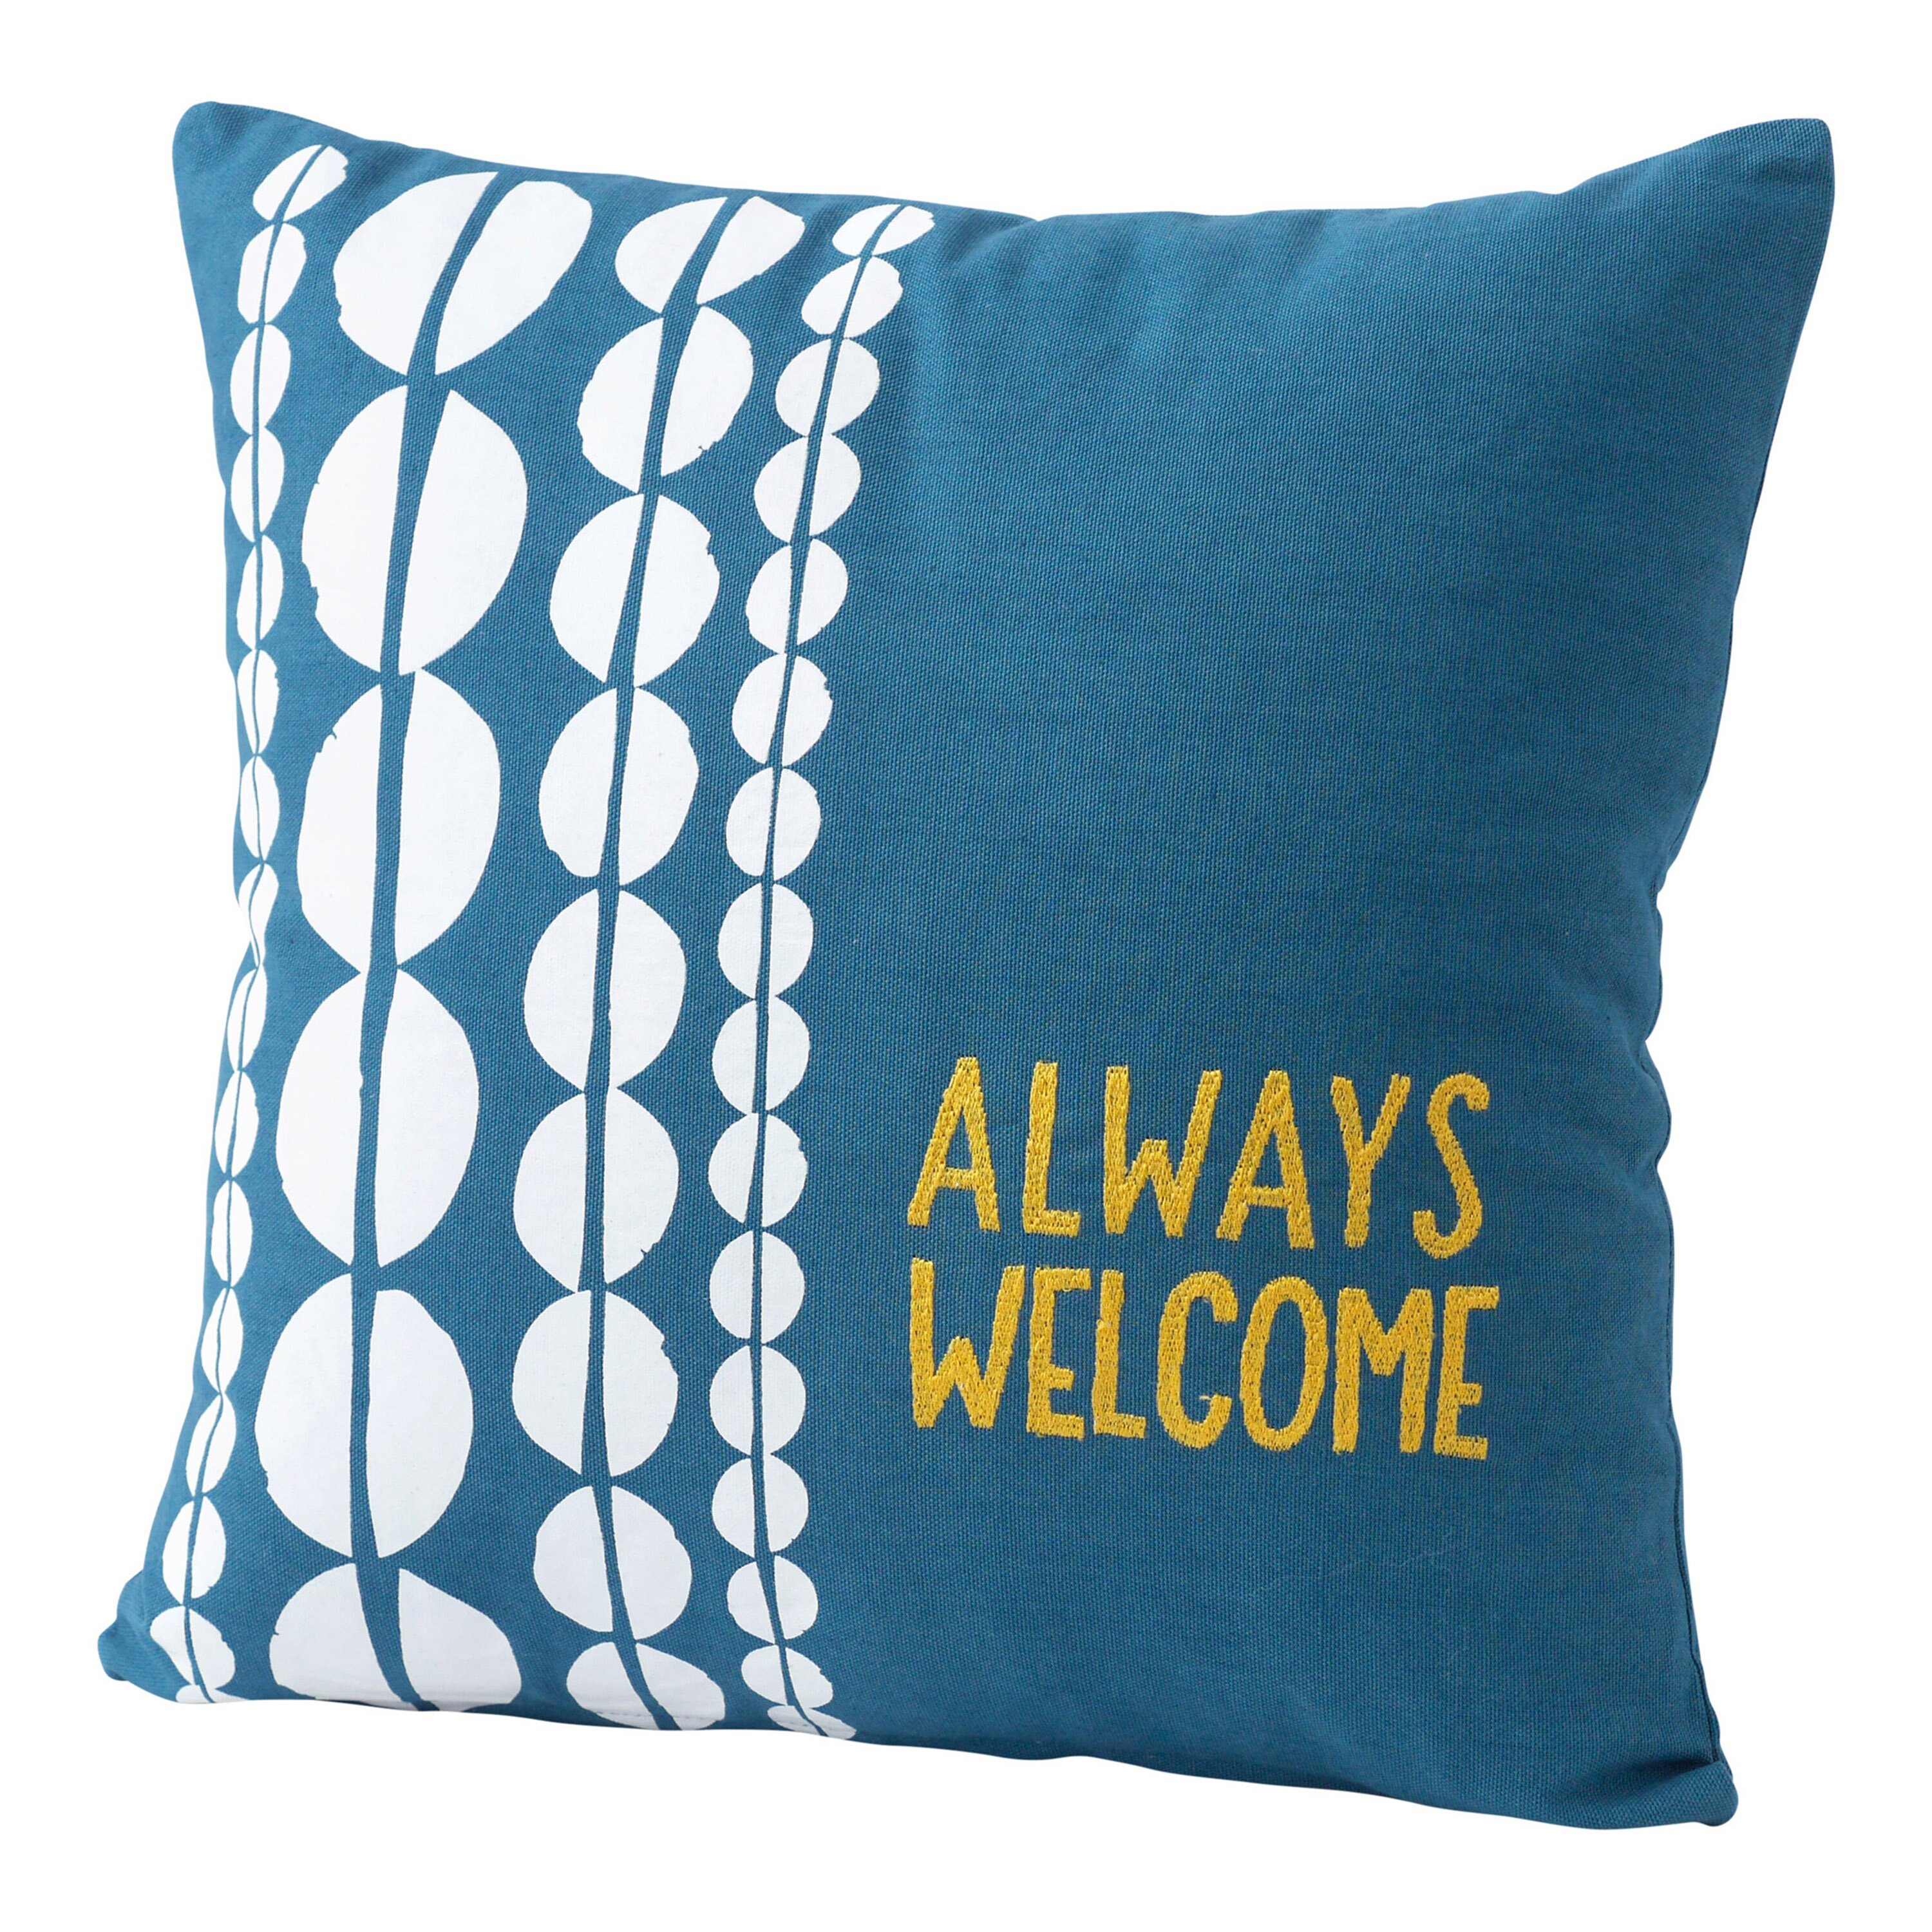 Welcome Home Throw Pillow : Hallmark Home & Gifts